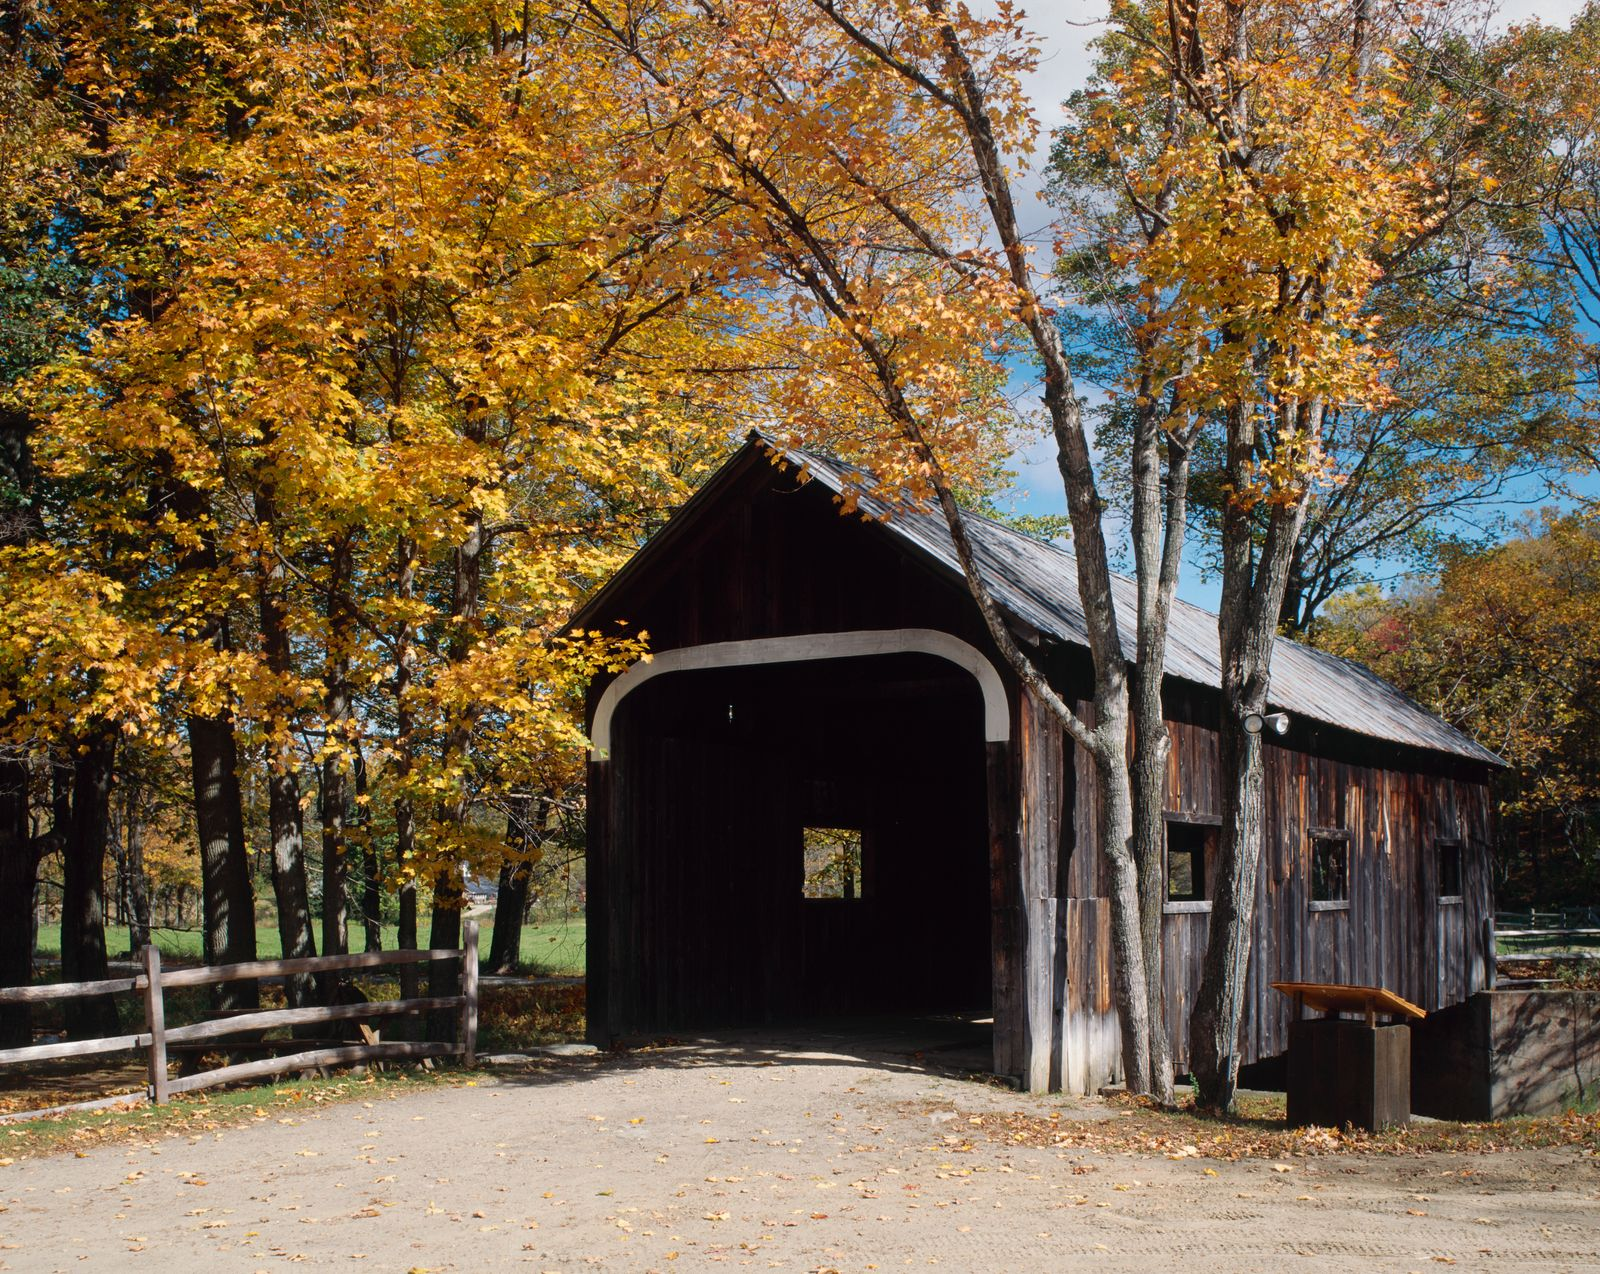 Car at opening of covered bridge,Grafton,Vermont,New England,USA